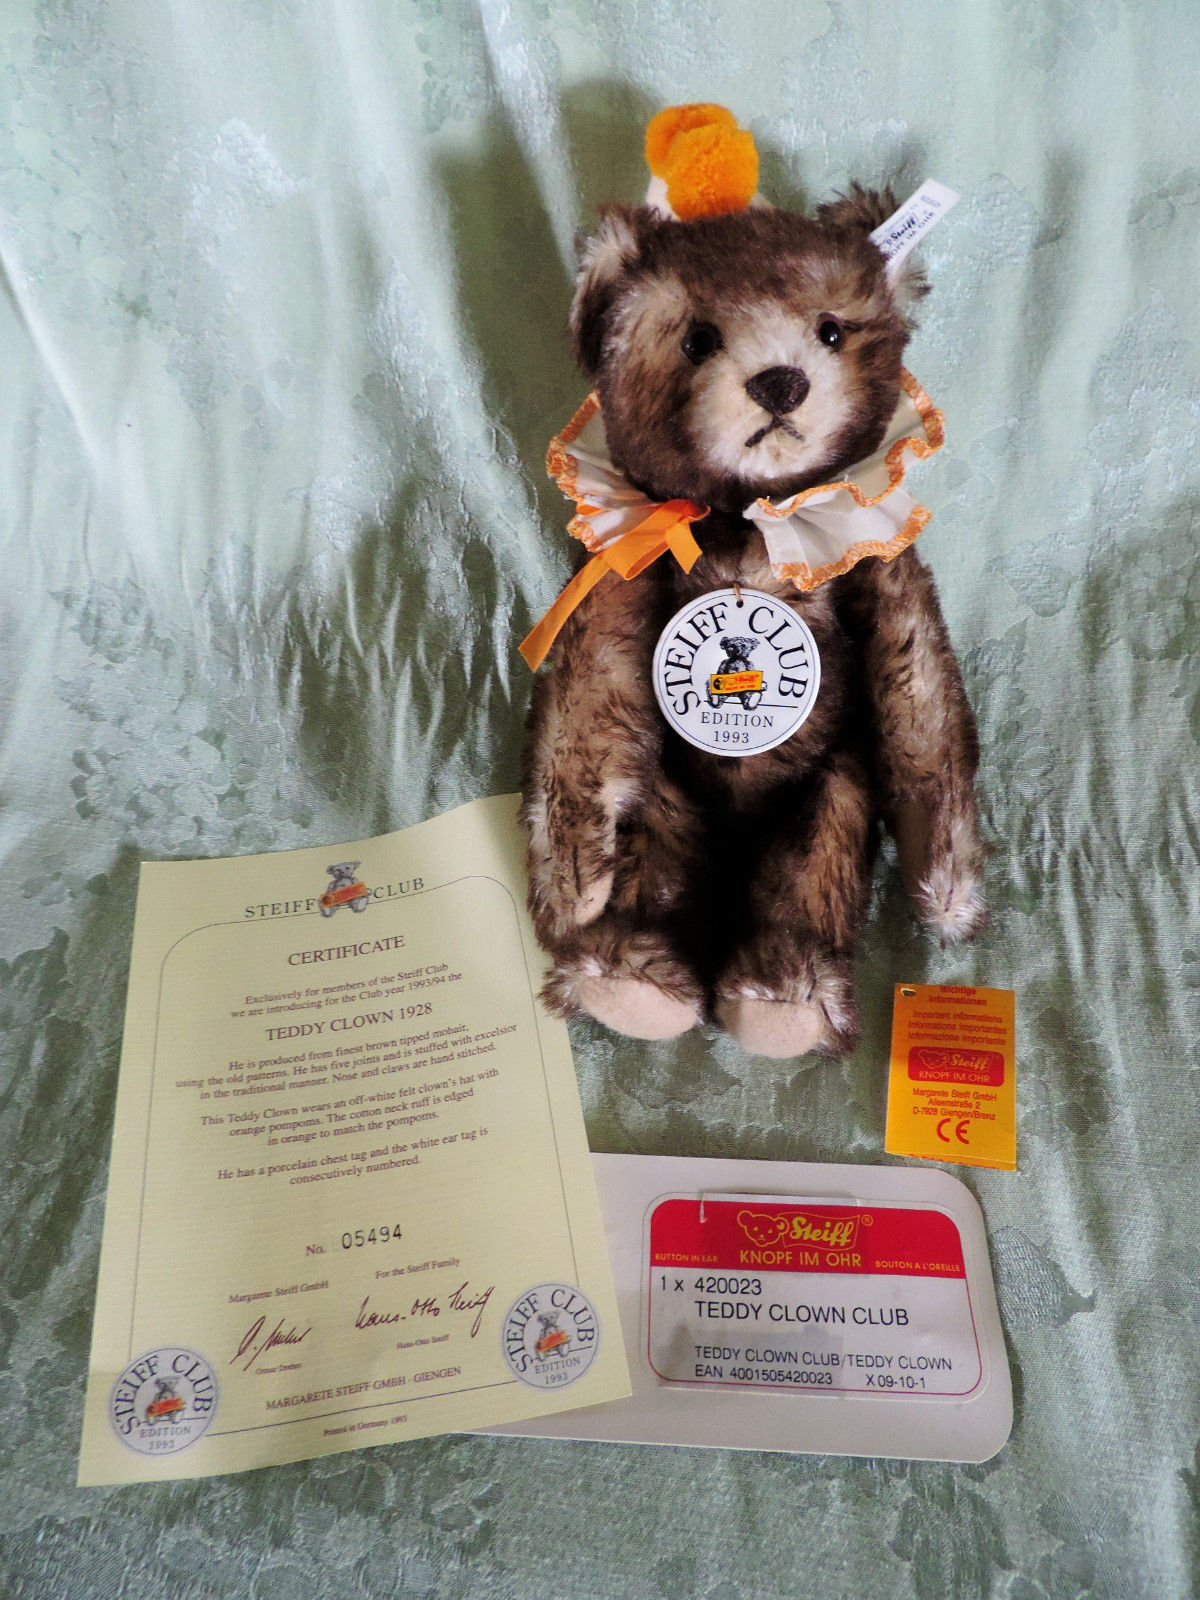 ❤Steiff Teddy Clown 1928 Bear 1993 Club Edition 420023 w Box ID's Papers LT ED❤